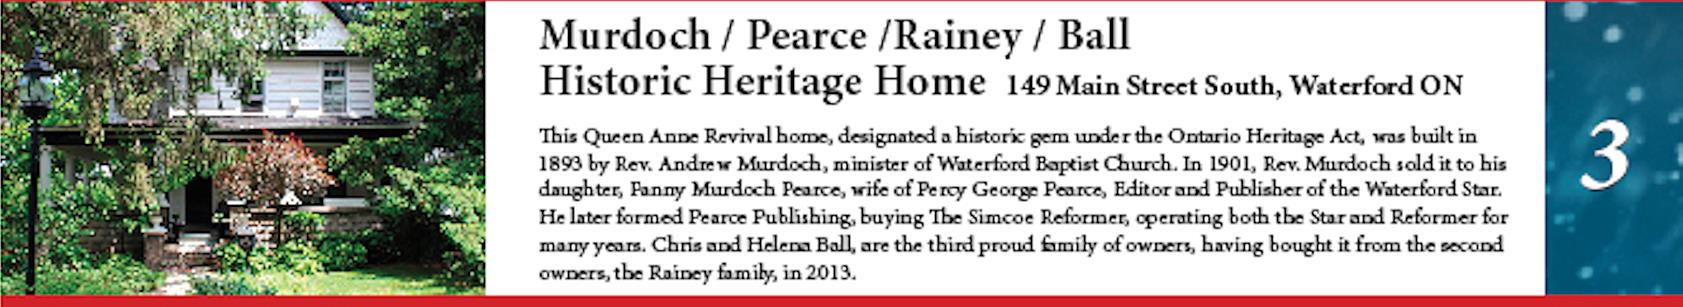 Murdoch/Pearce/Rainey/Ball Historic Heritage home